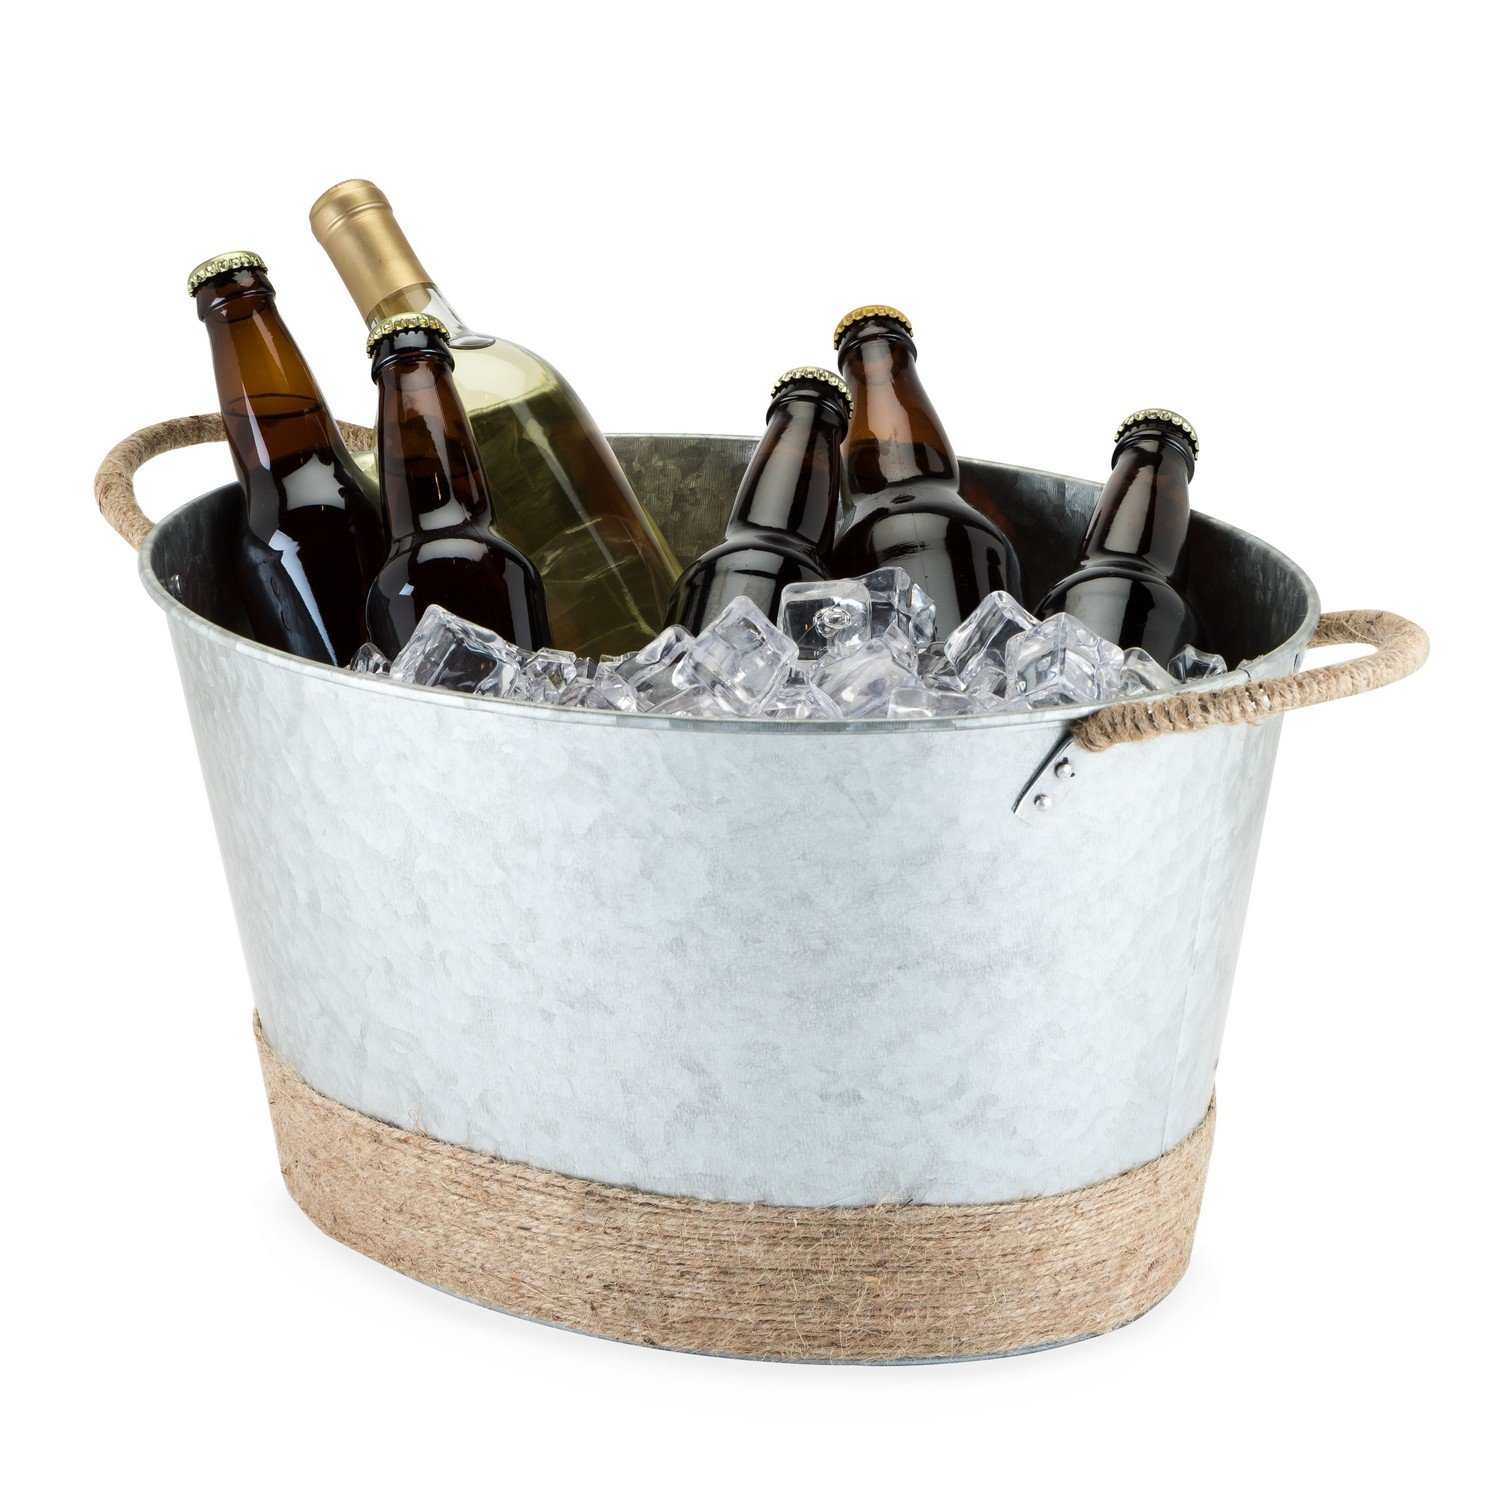 Ice Bucket Handle, Jute Rope Wrapped Galvanized Tub Insulated Vintage Ice Bucket